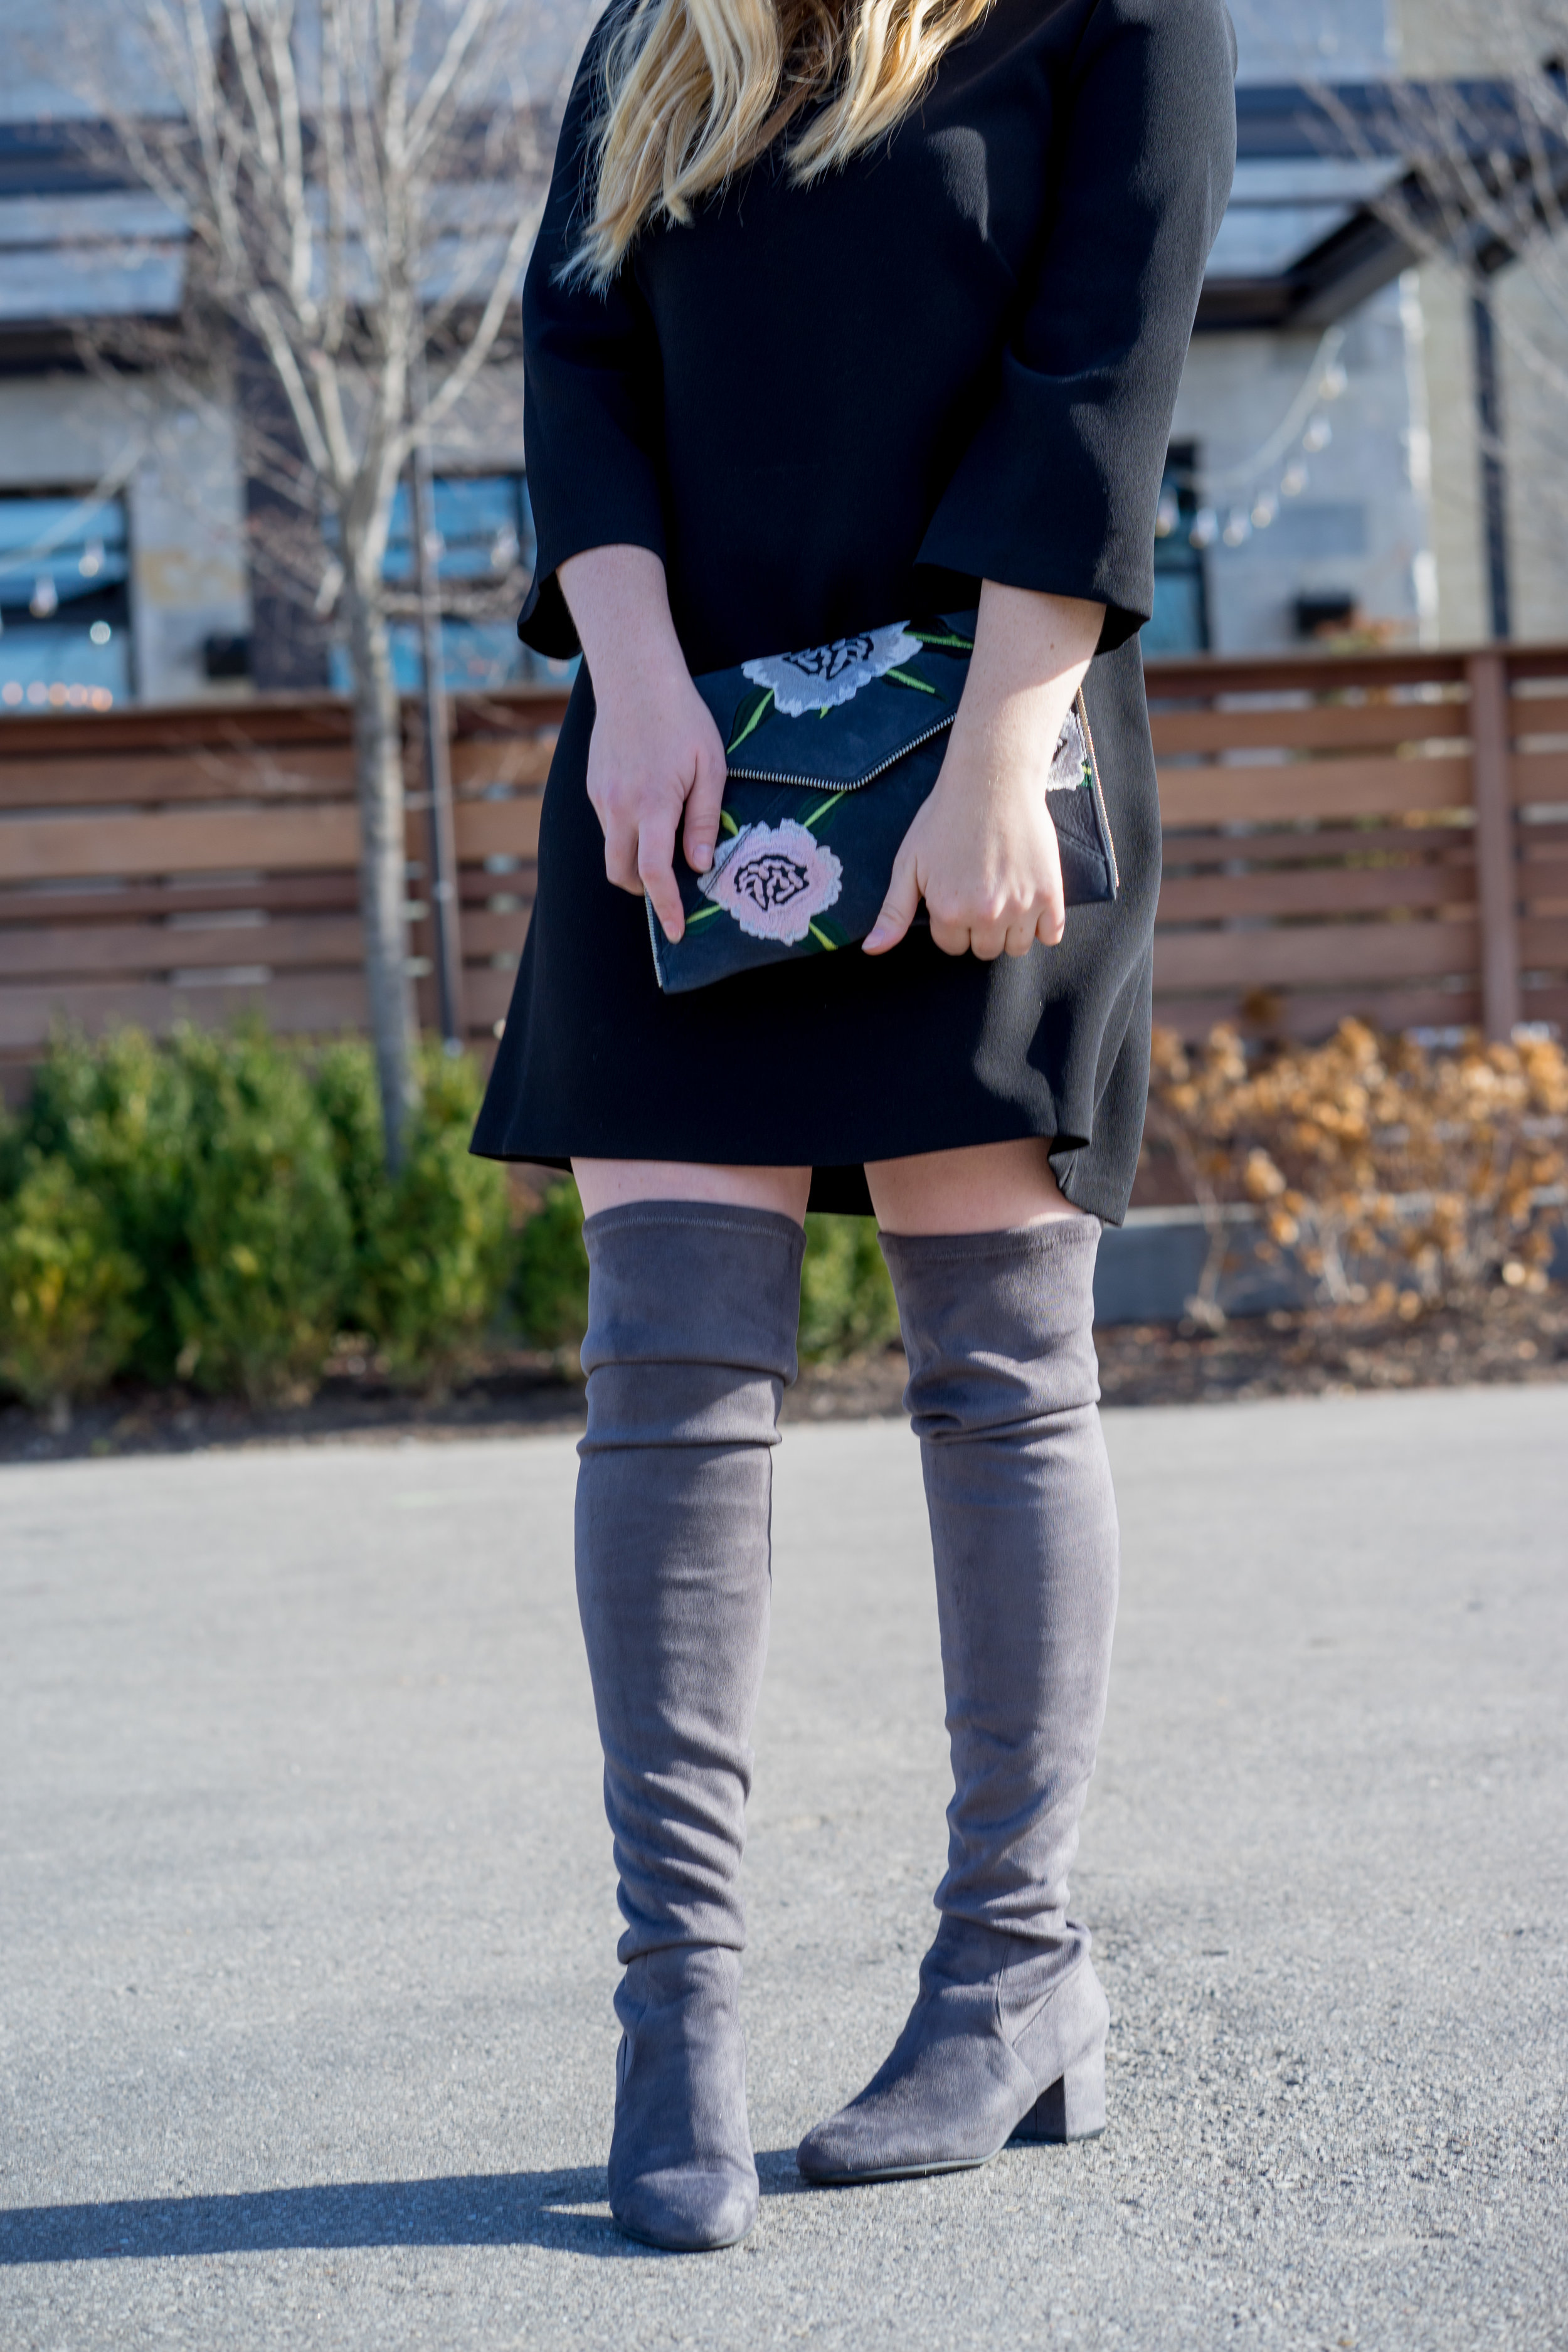 c2862db7f78 The 5 Reasons Why I Don t Love Over-The-Knee Boots — Maggie à la Mode